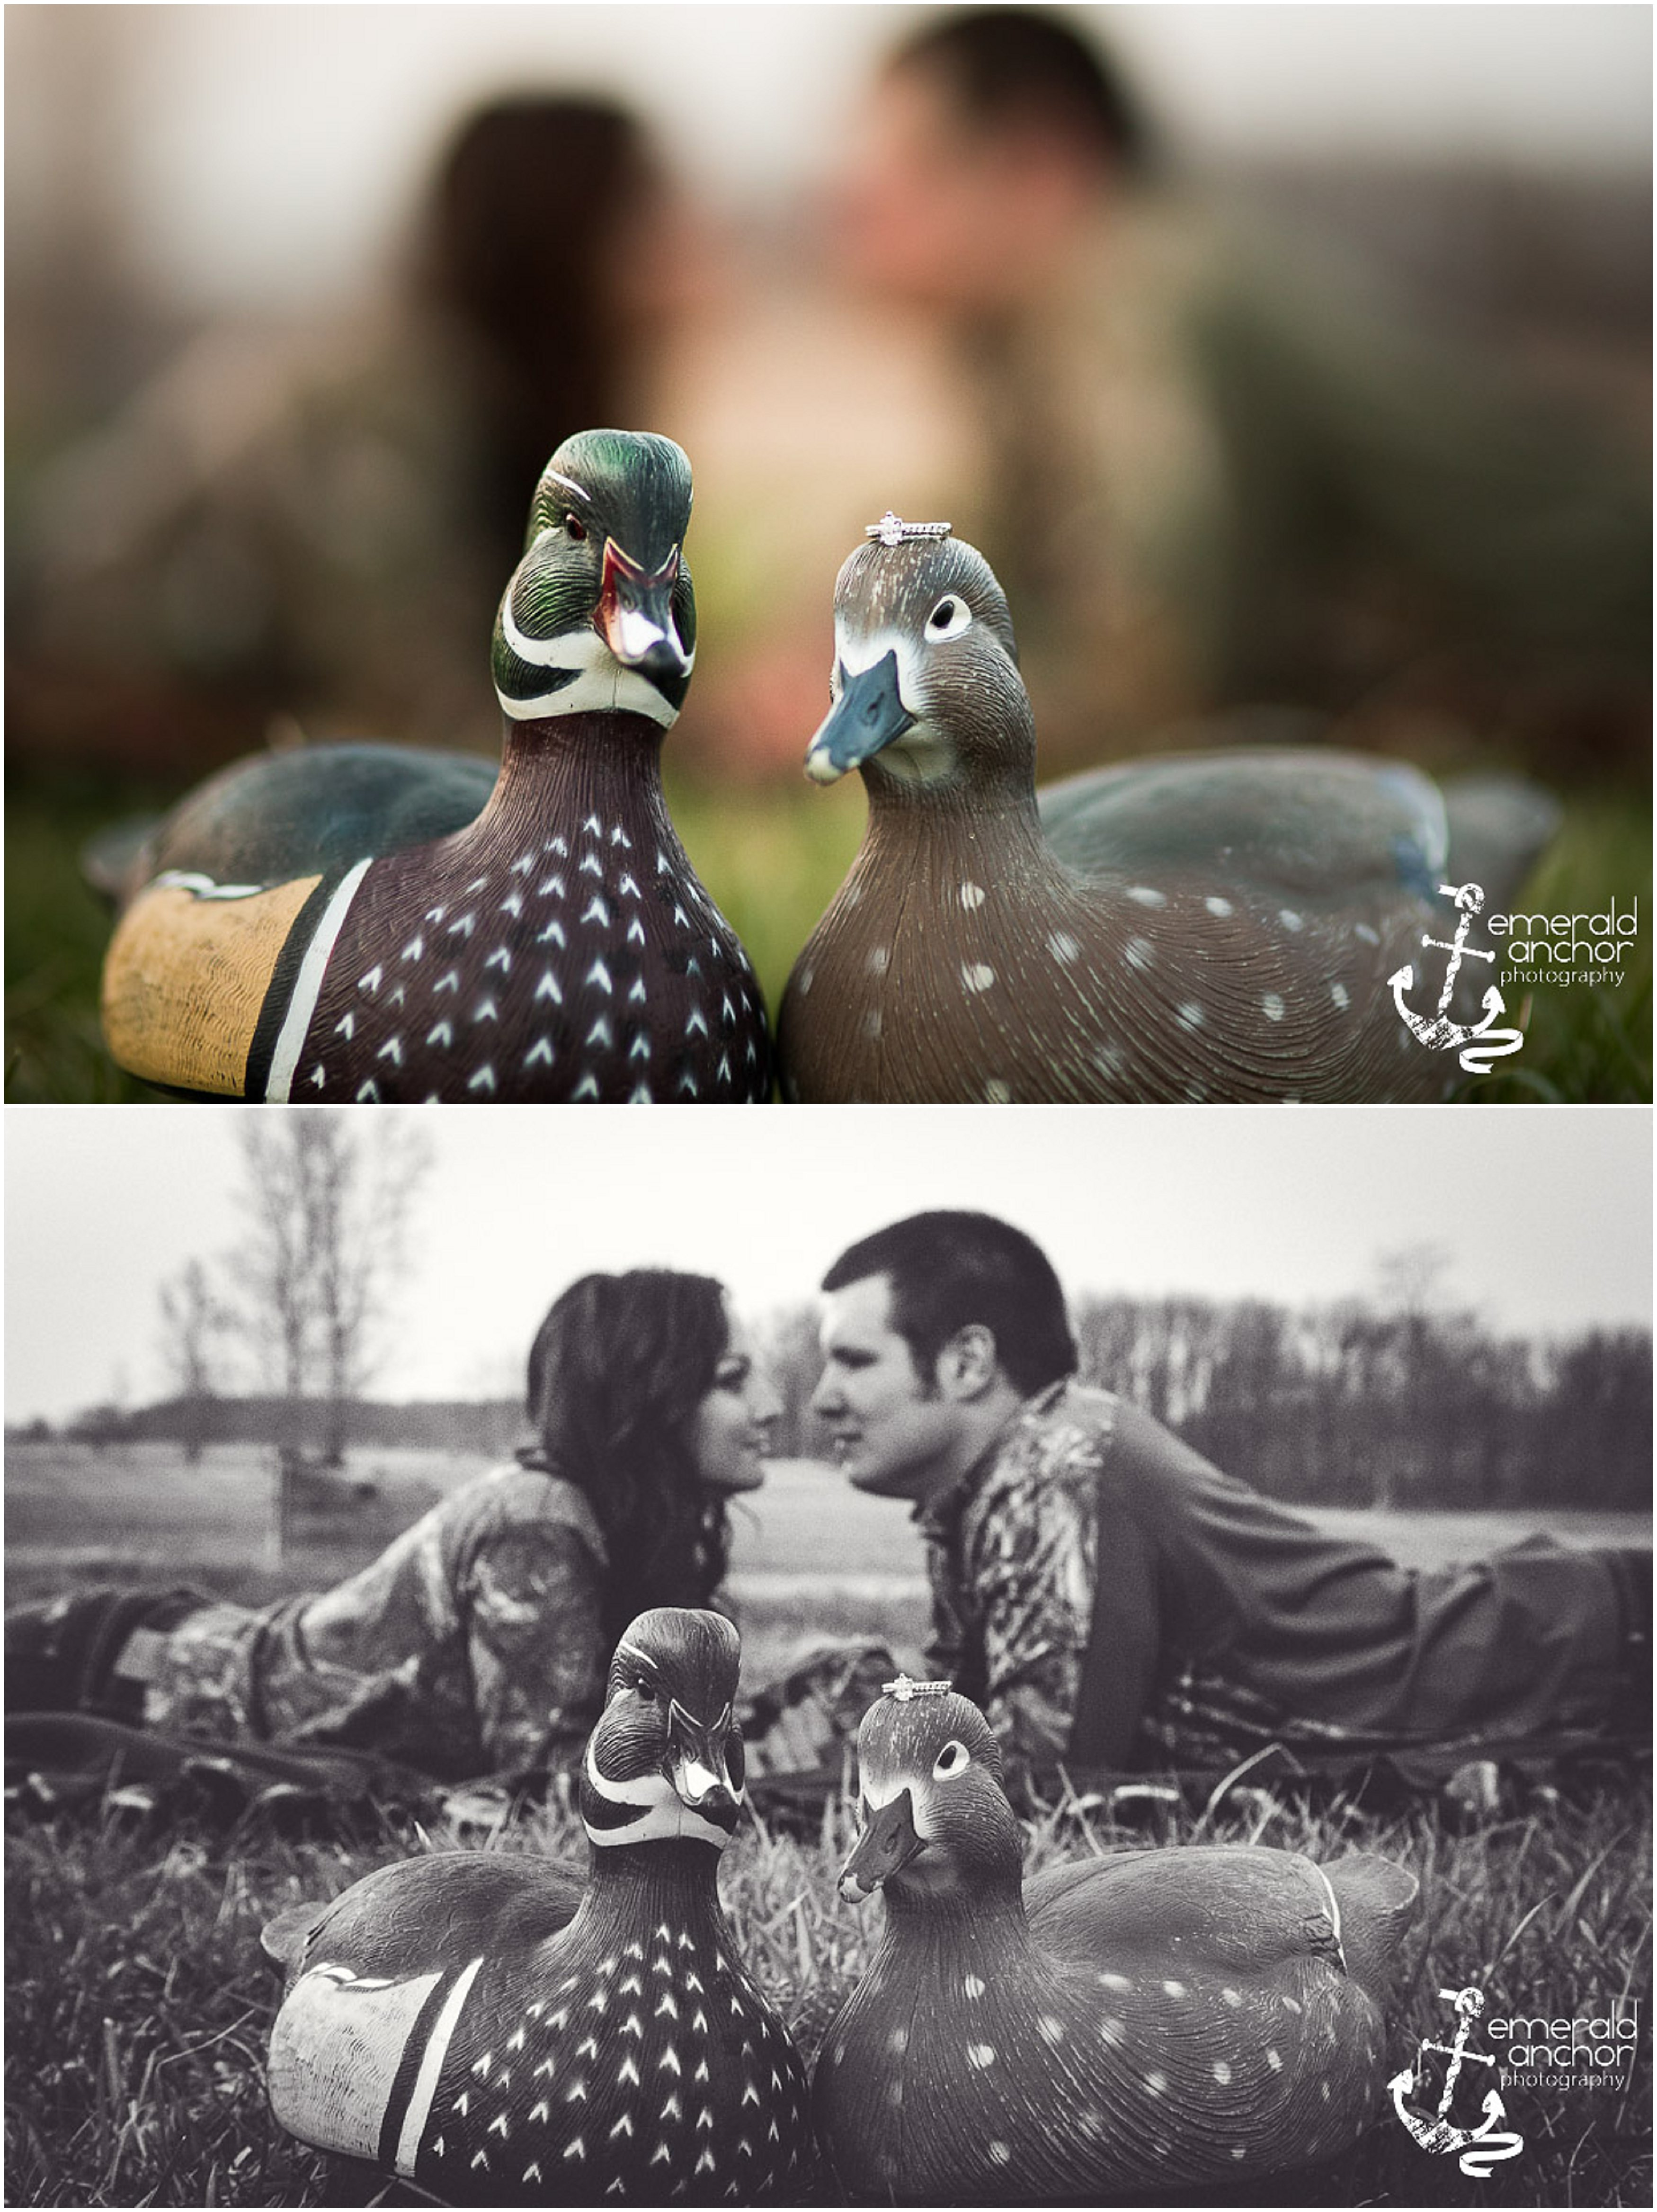 Emerald Anchor Photography Engagement Pictures (5)